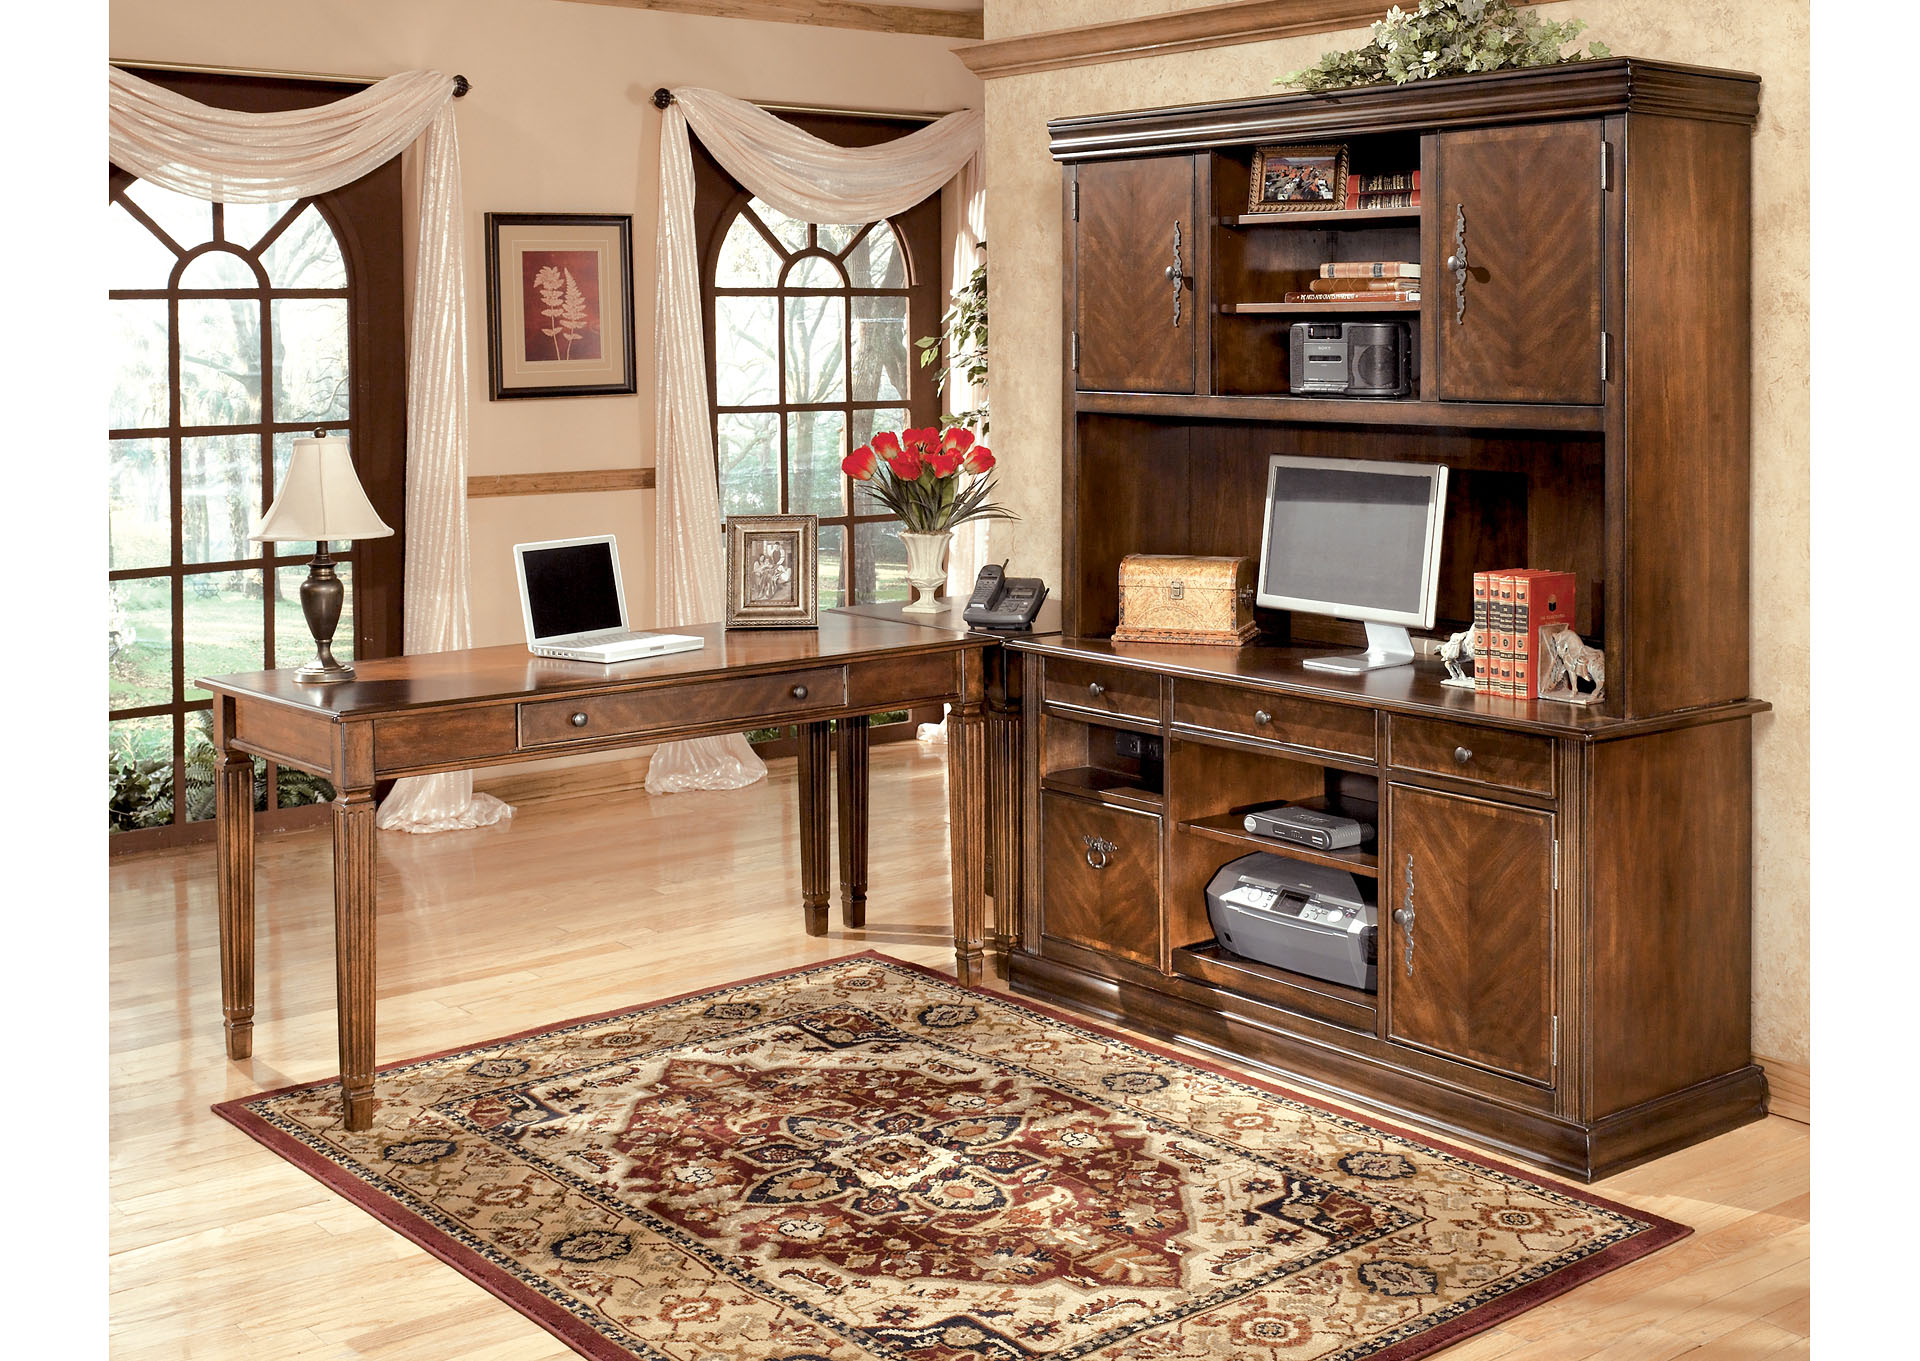 Hamlyn Large L-Shaped Desk w/ Large Hutch & Credenza,ABF Signature Design by Ashley